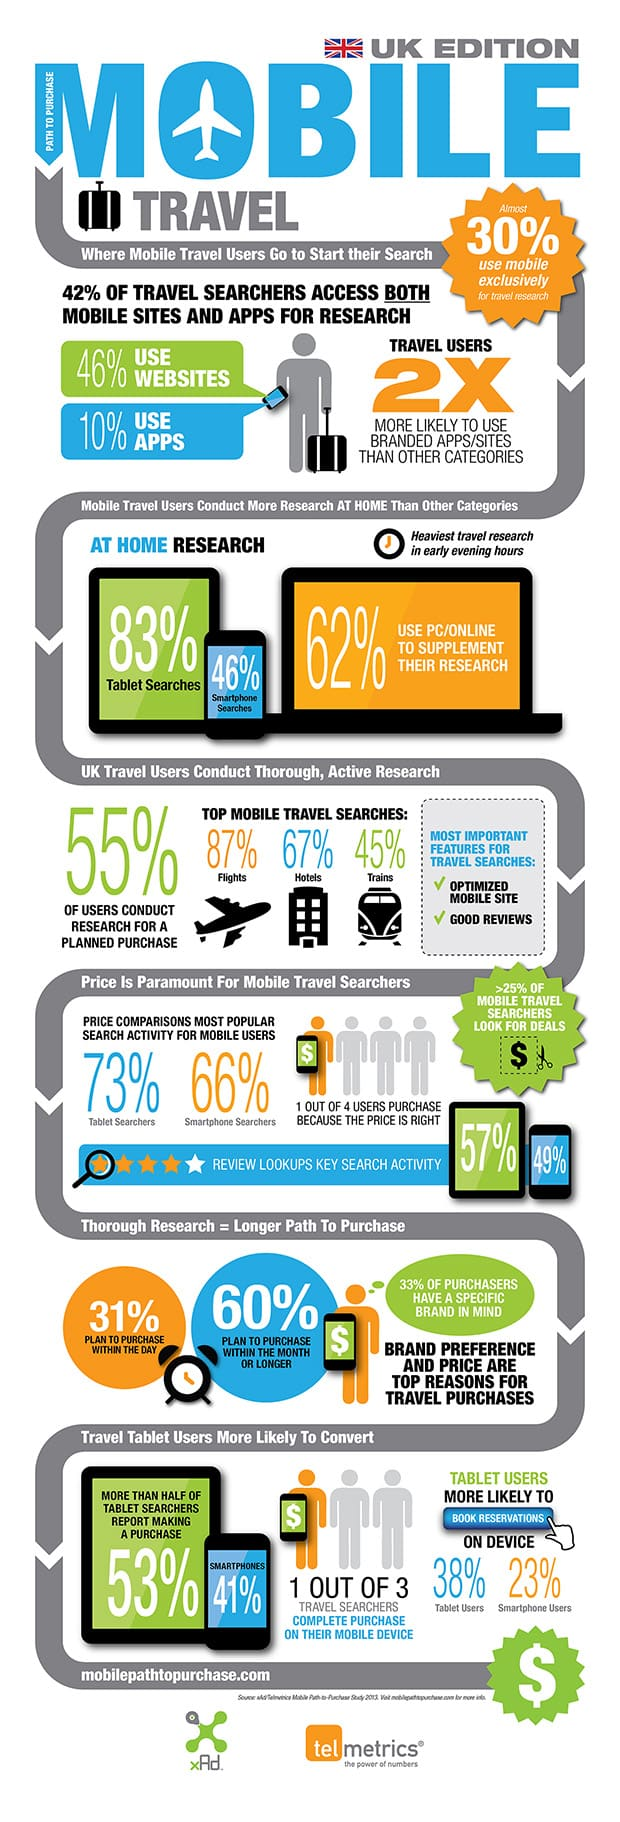 Telmetrics_xAd_UK_TRAVEL_Infographic_R3